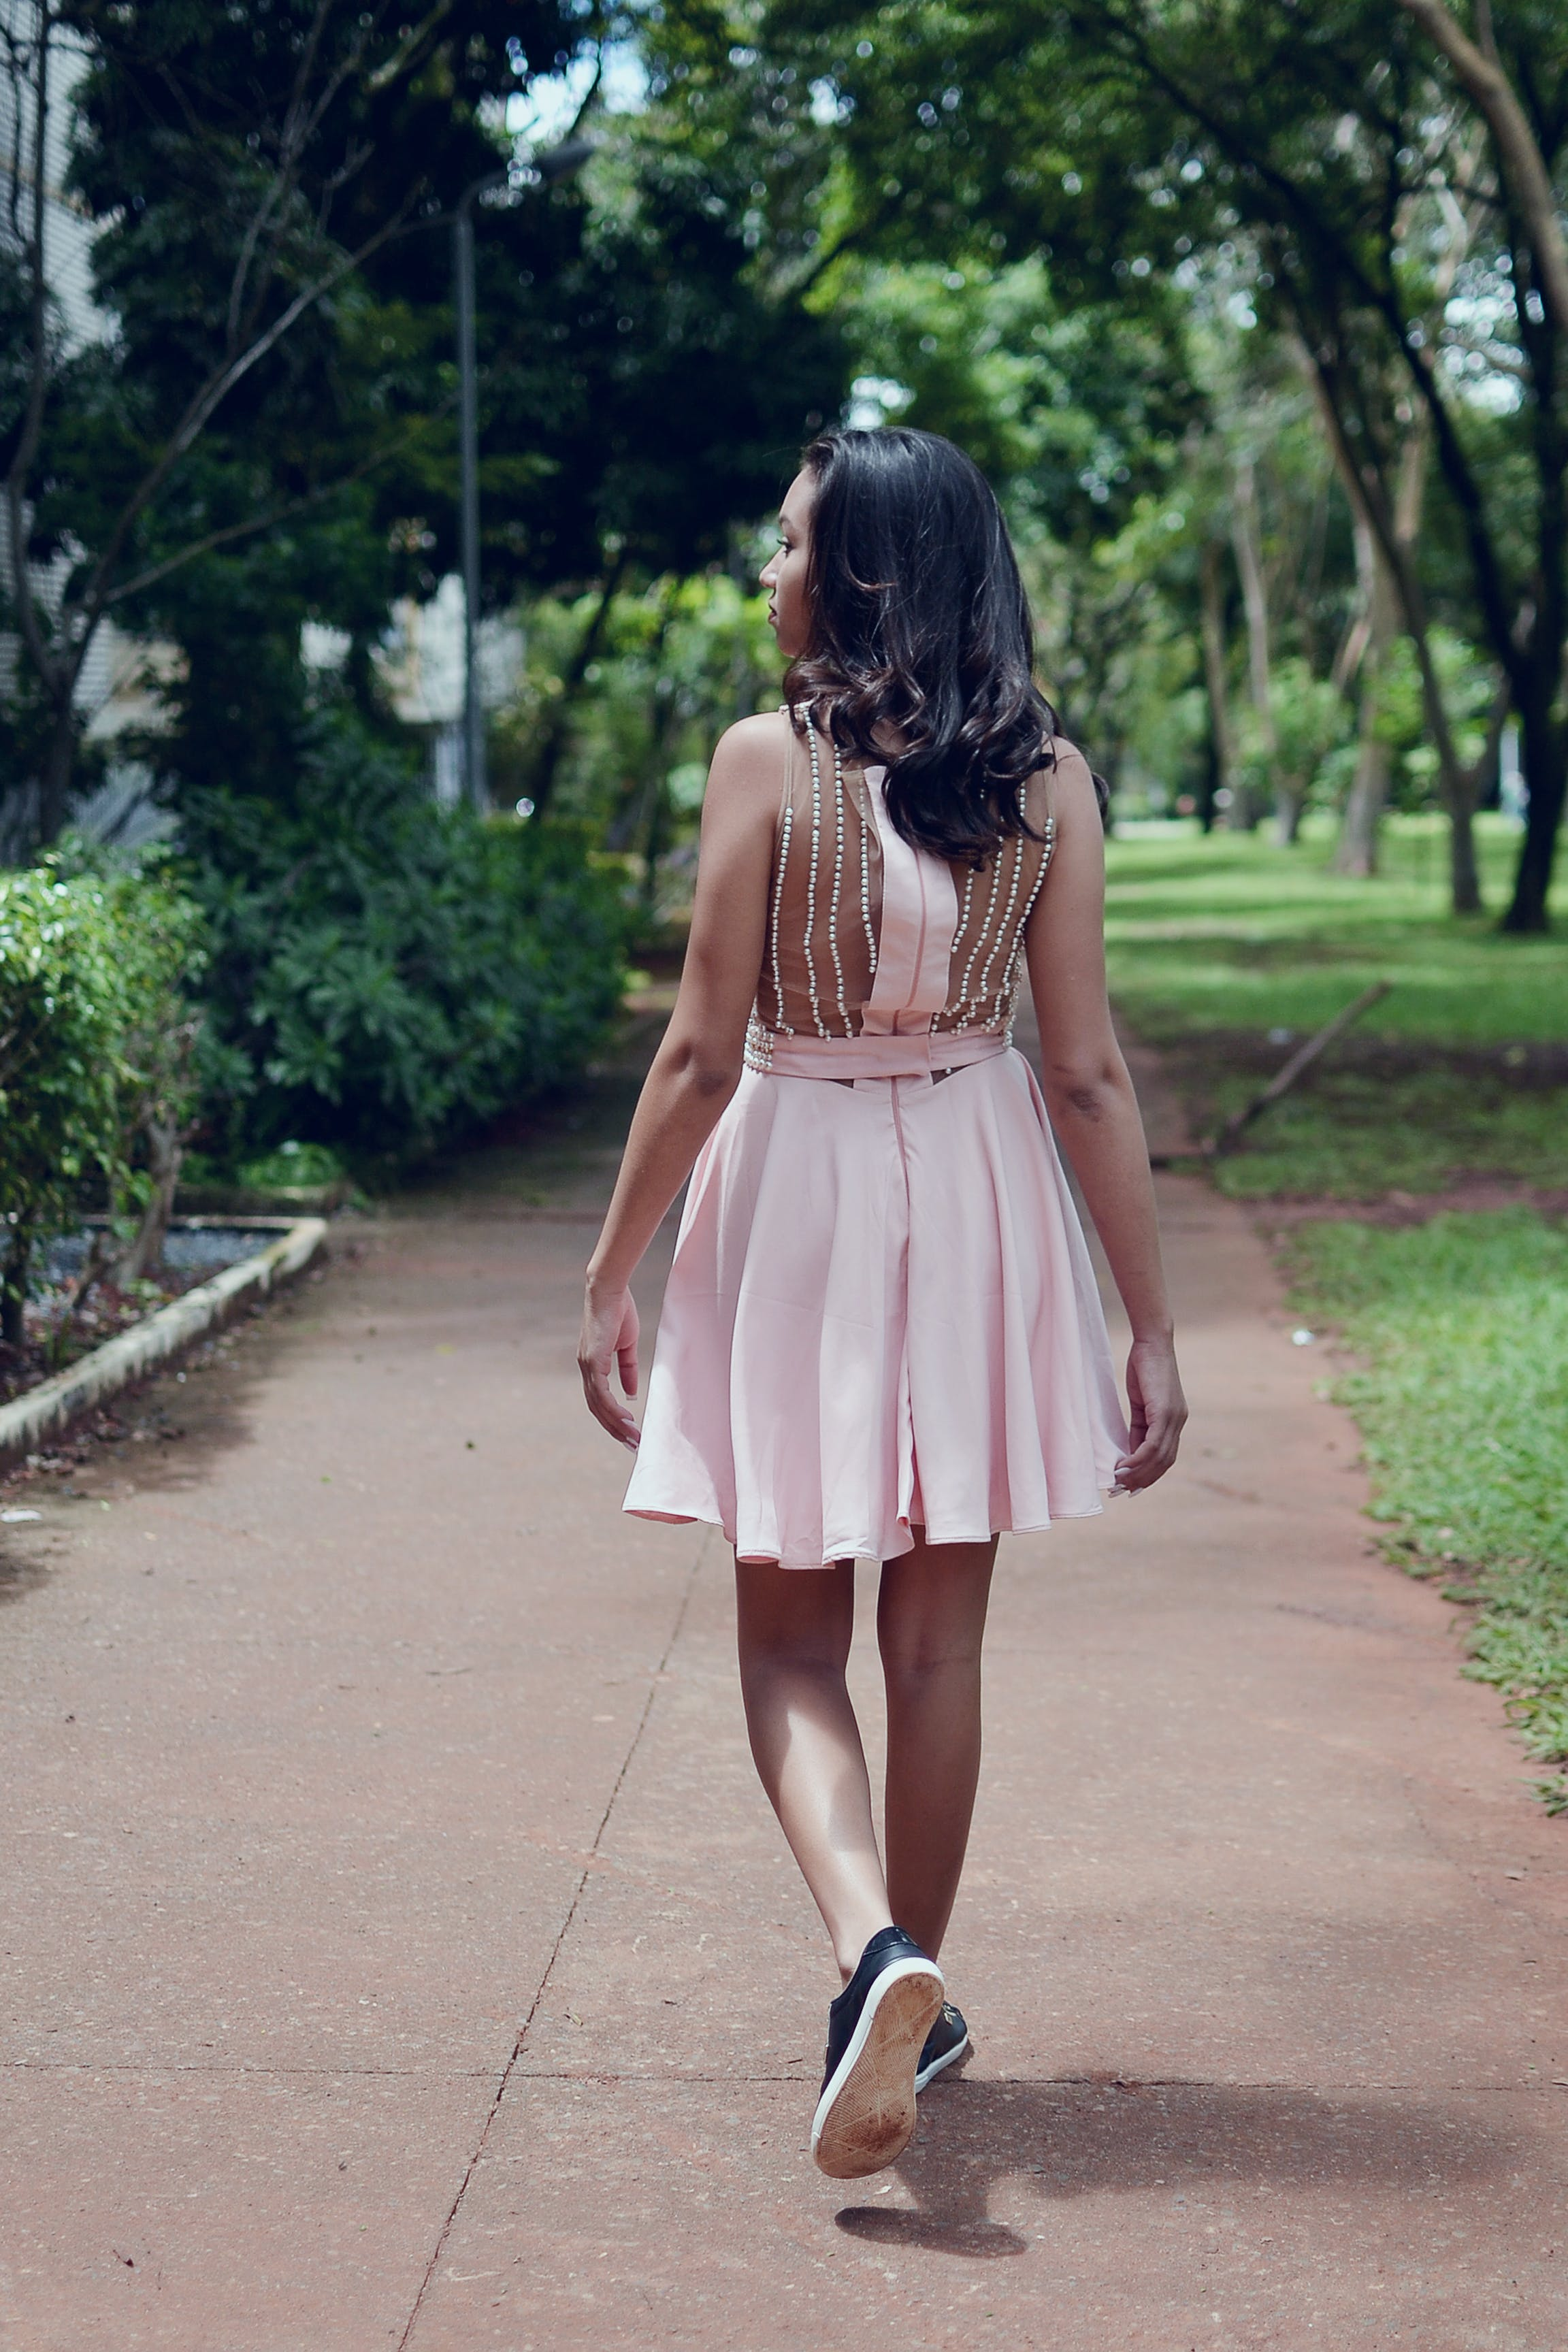 Woman Wearing Pink Mini Dress Walking on Walkway